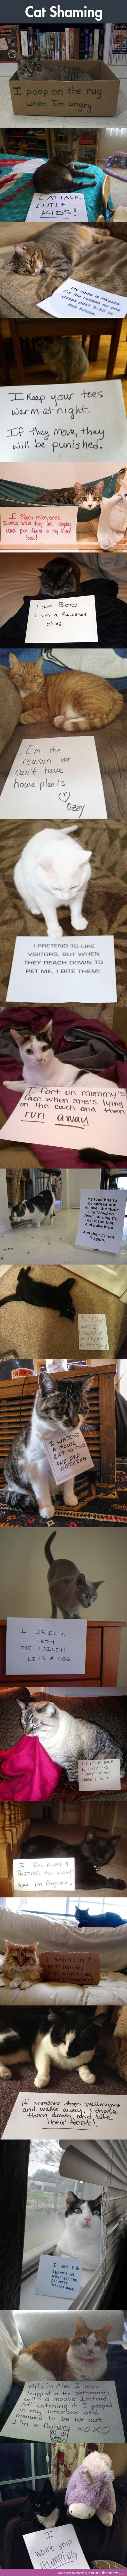 Cat shaming (comp)